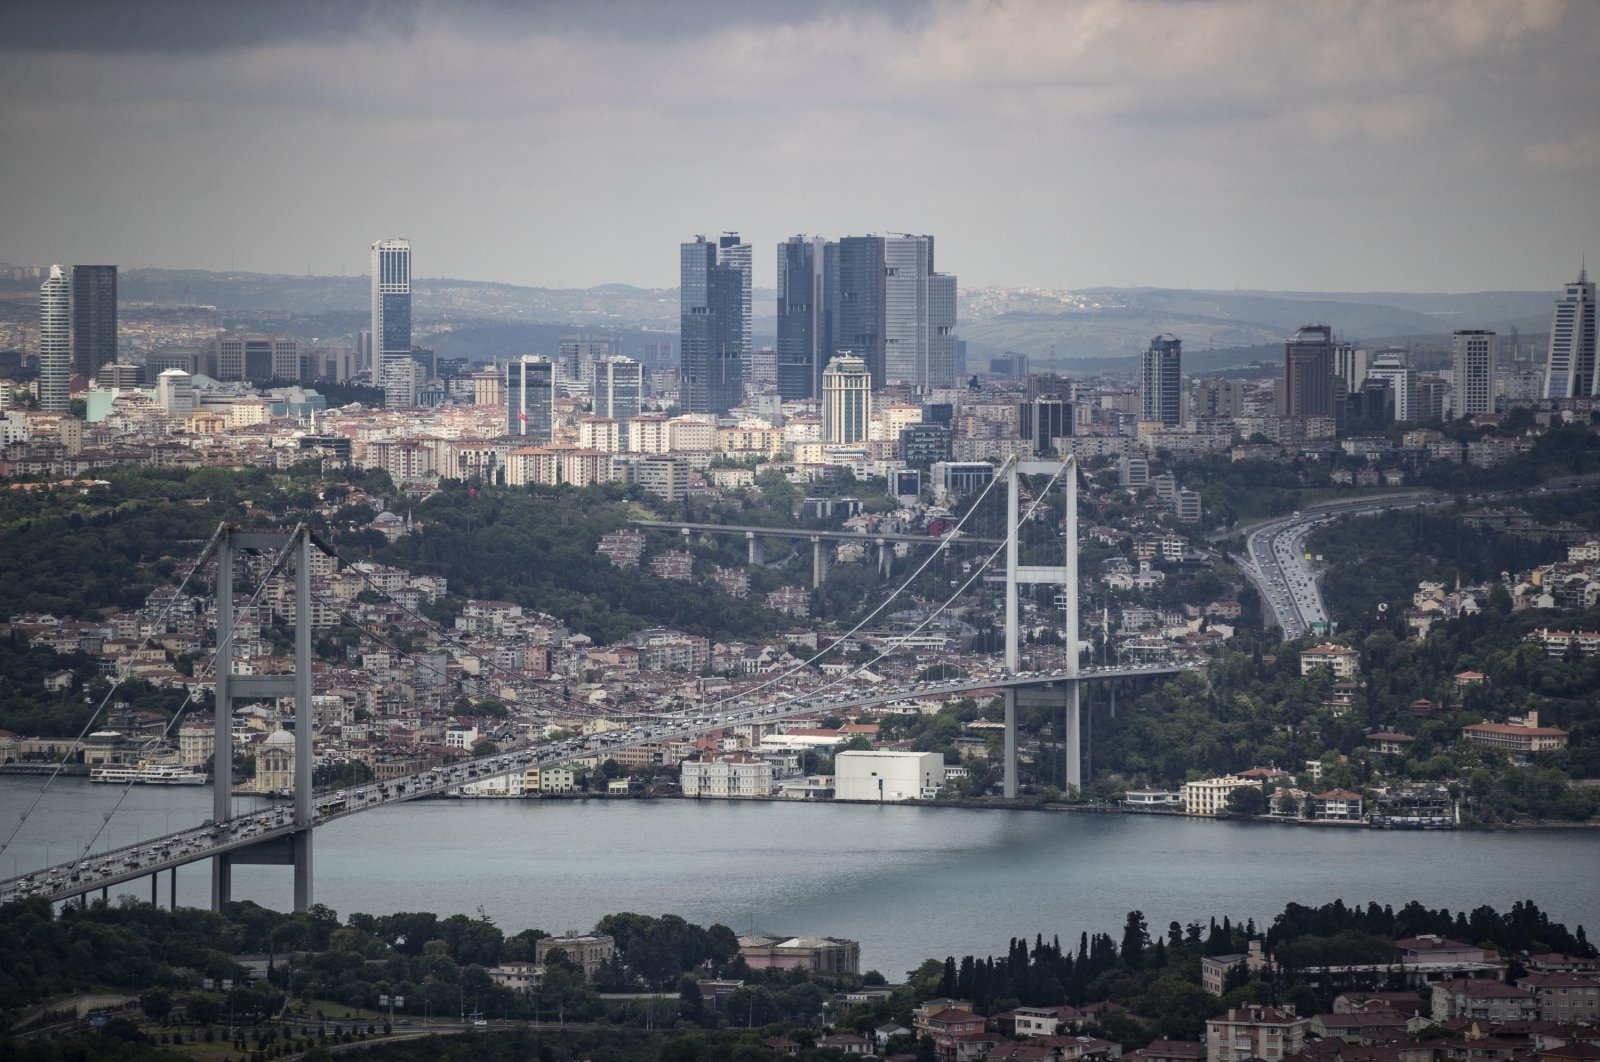 A view of the July 15 Martyrs Bridge, formerly known as the Bosporus Bridge, and surrounding buildings and skyscrapers, Istanbul, Turkey, May 28, 2020. (AA Photo)